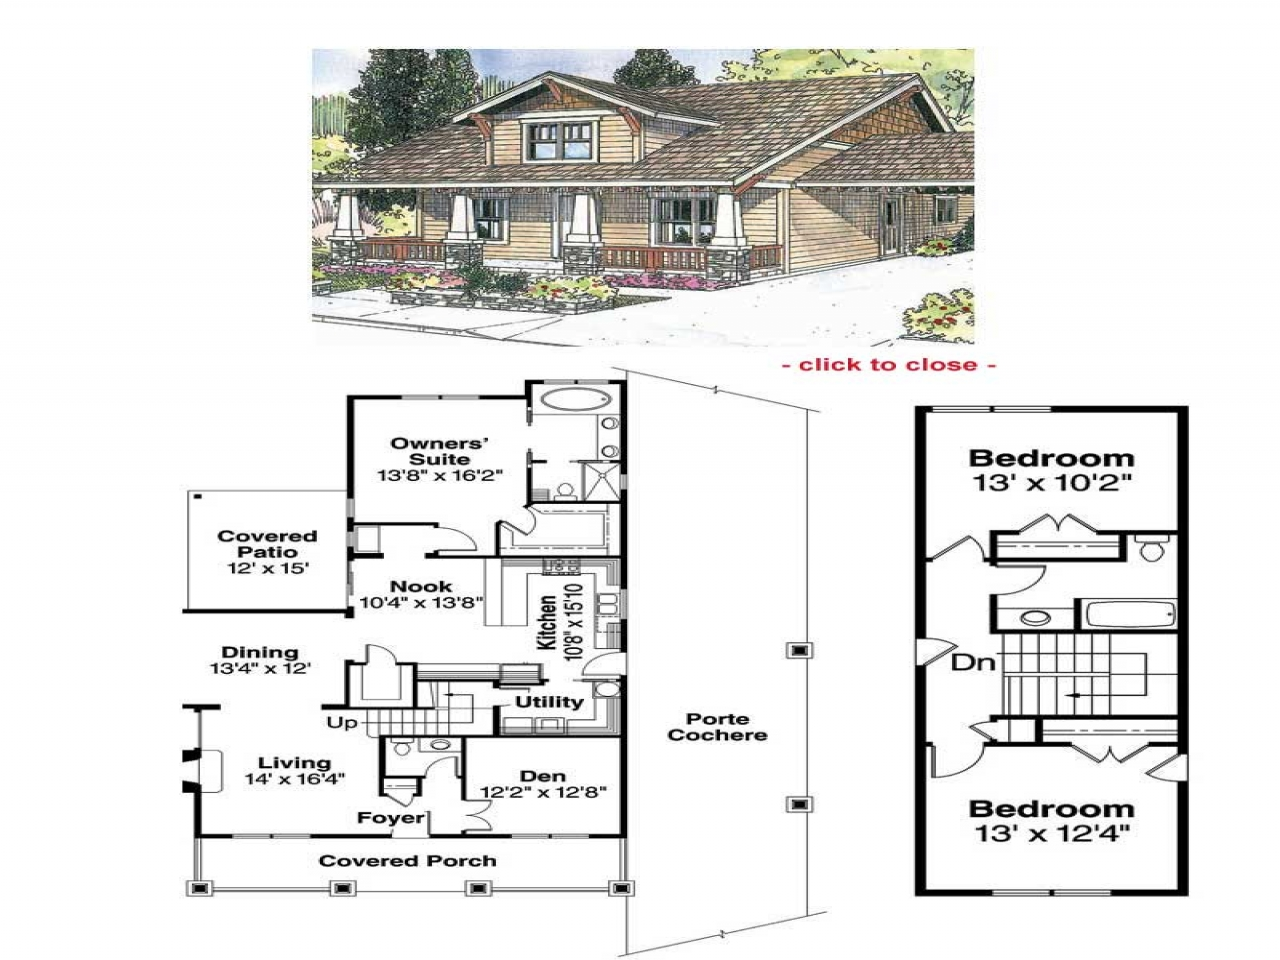 Craftsman bungalow plans find house plans vintage Buy architectural plans